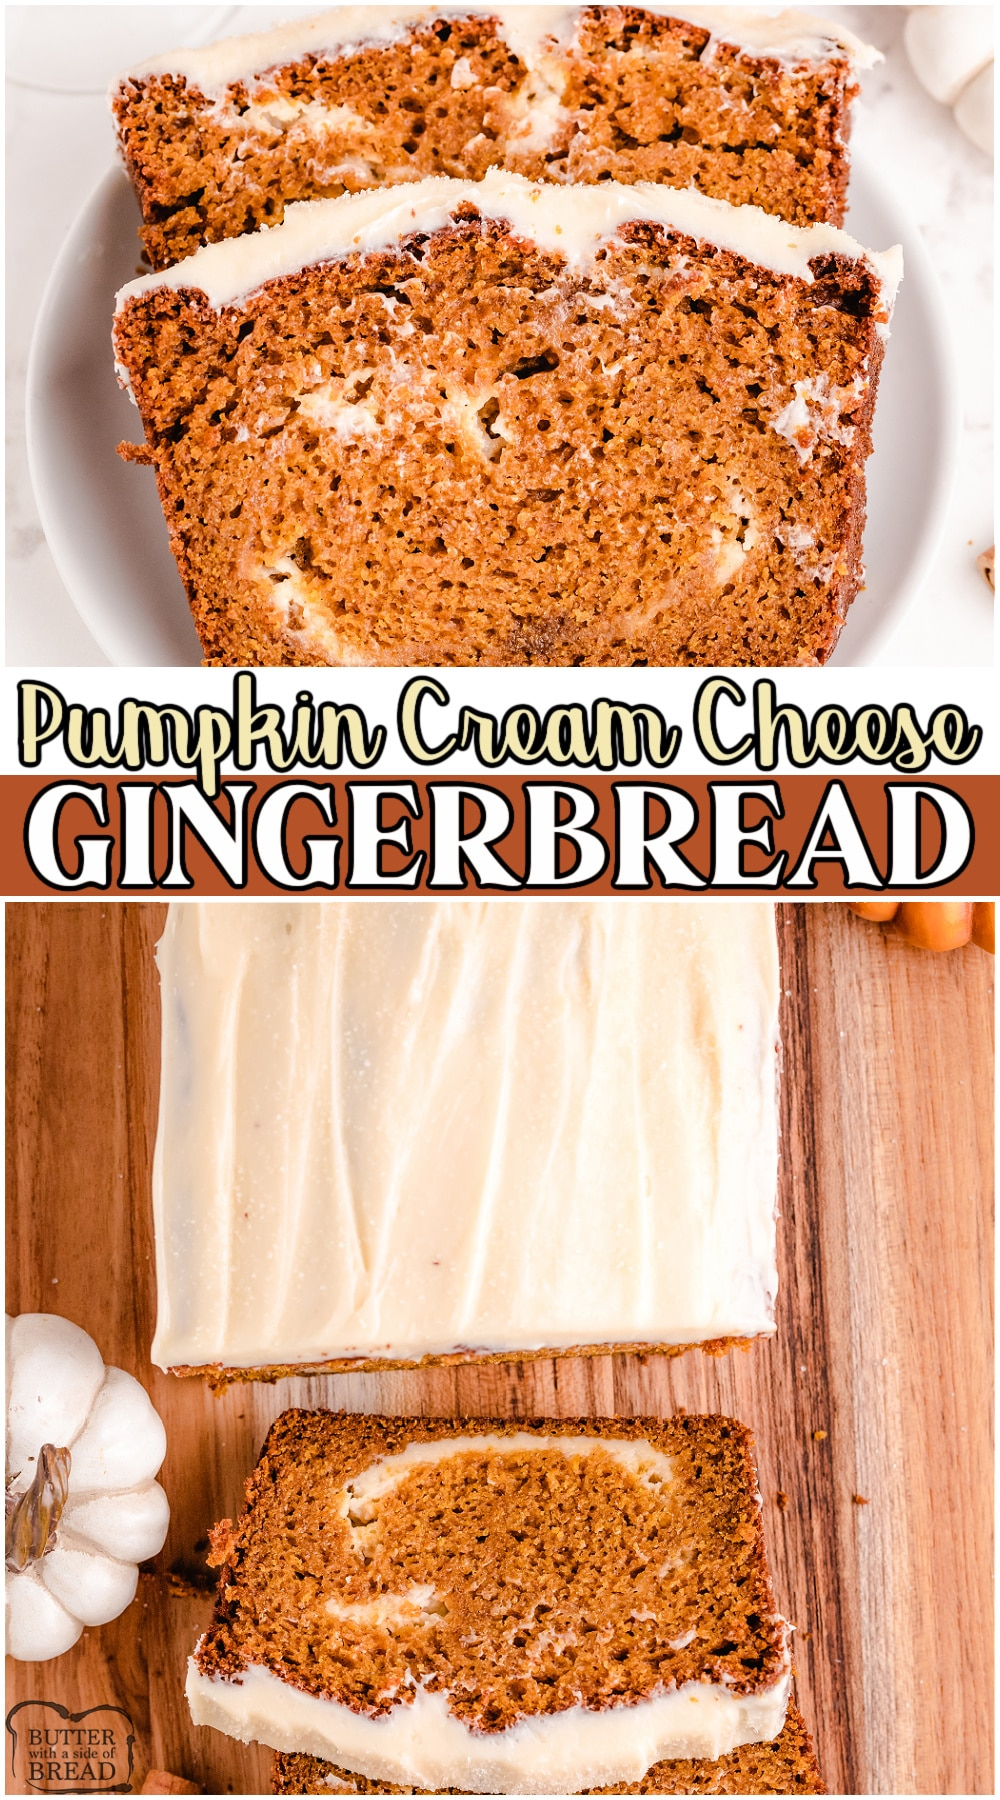 Pumpkin Cream Cheese Gingerbread is a sweet quick bread made with brown sugar, pumpkin, molasses, cream cheese & a delightful blend of warm Fall spices! Heavenly gingerbread recipe topped with a cream cheese glaze that everyone enjoys. #gingerbread #pumpkin #FallBaking #dessert #easyrecipe from BUTTER WITH A SIDE OF BREAD